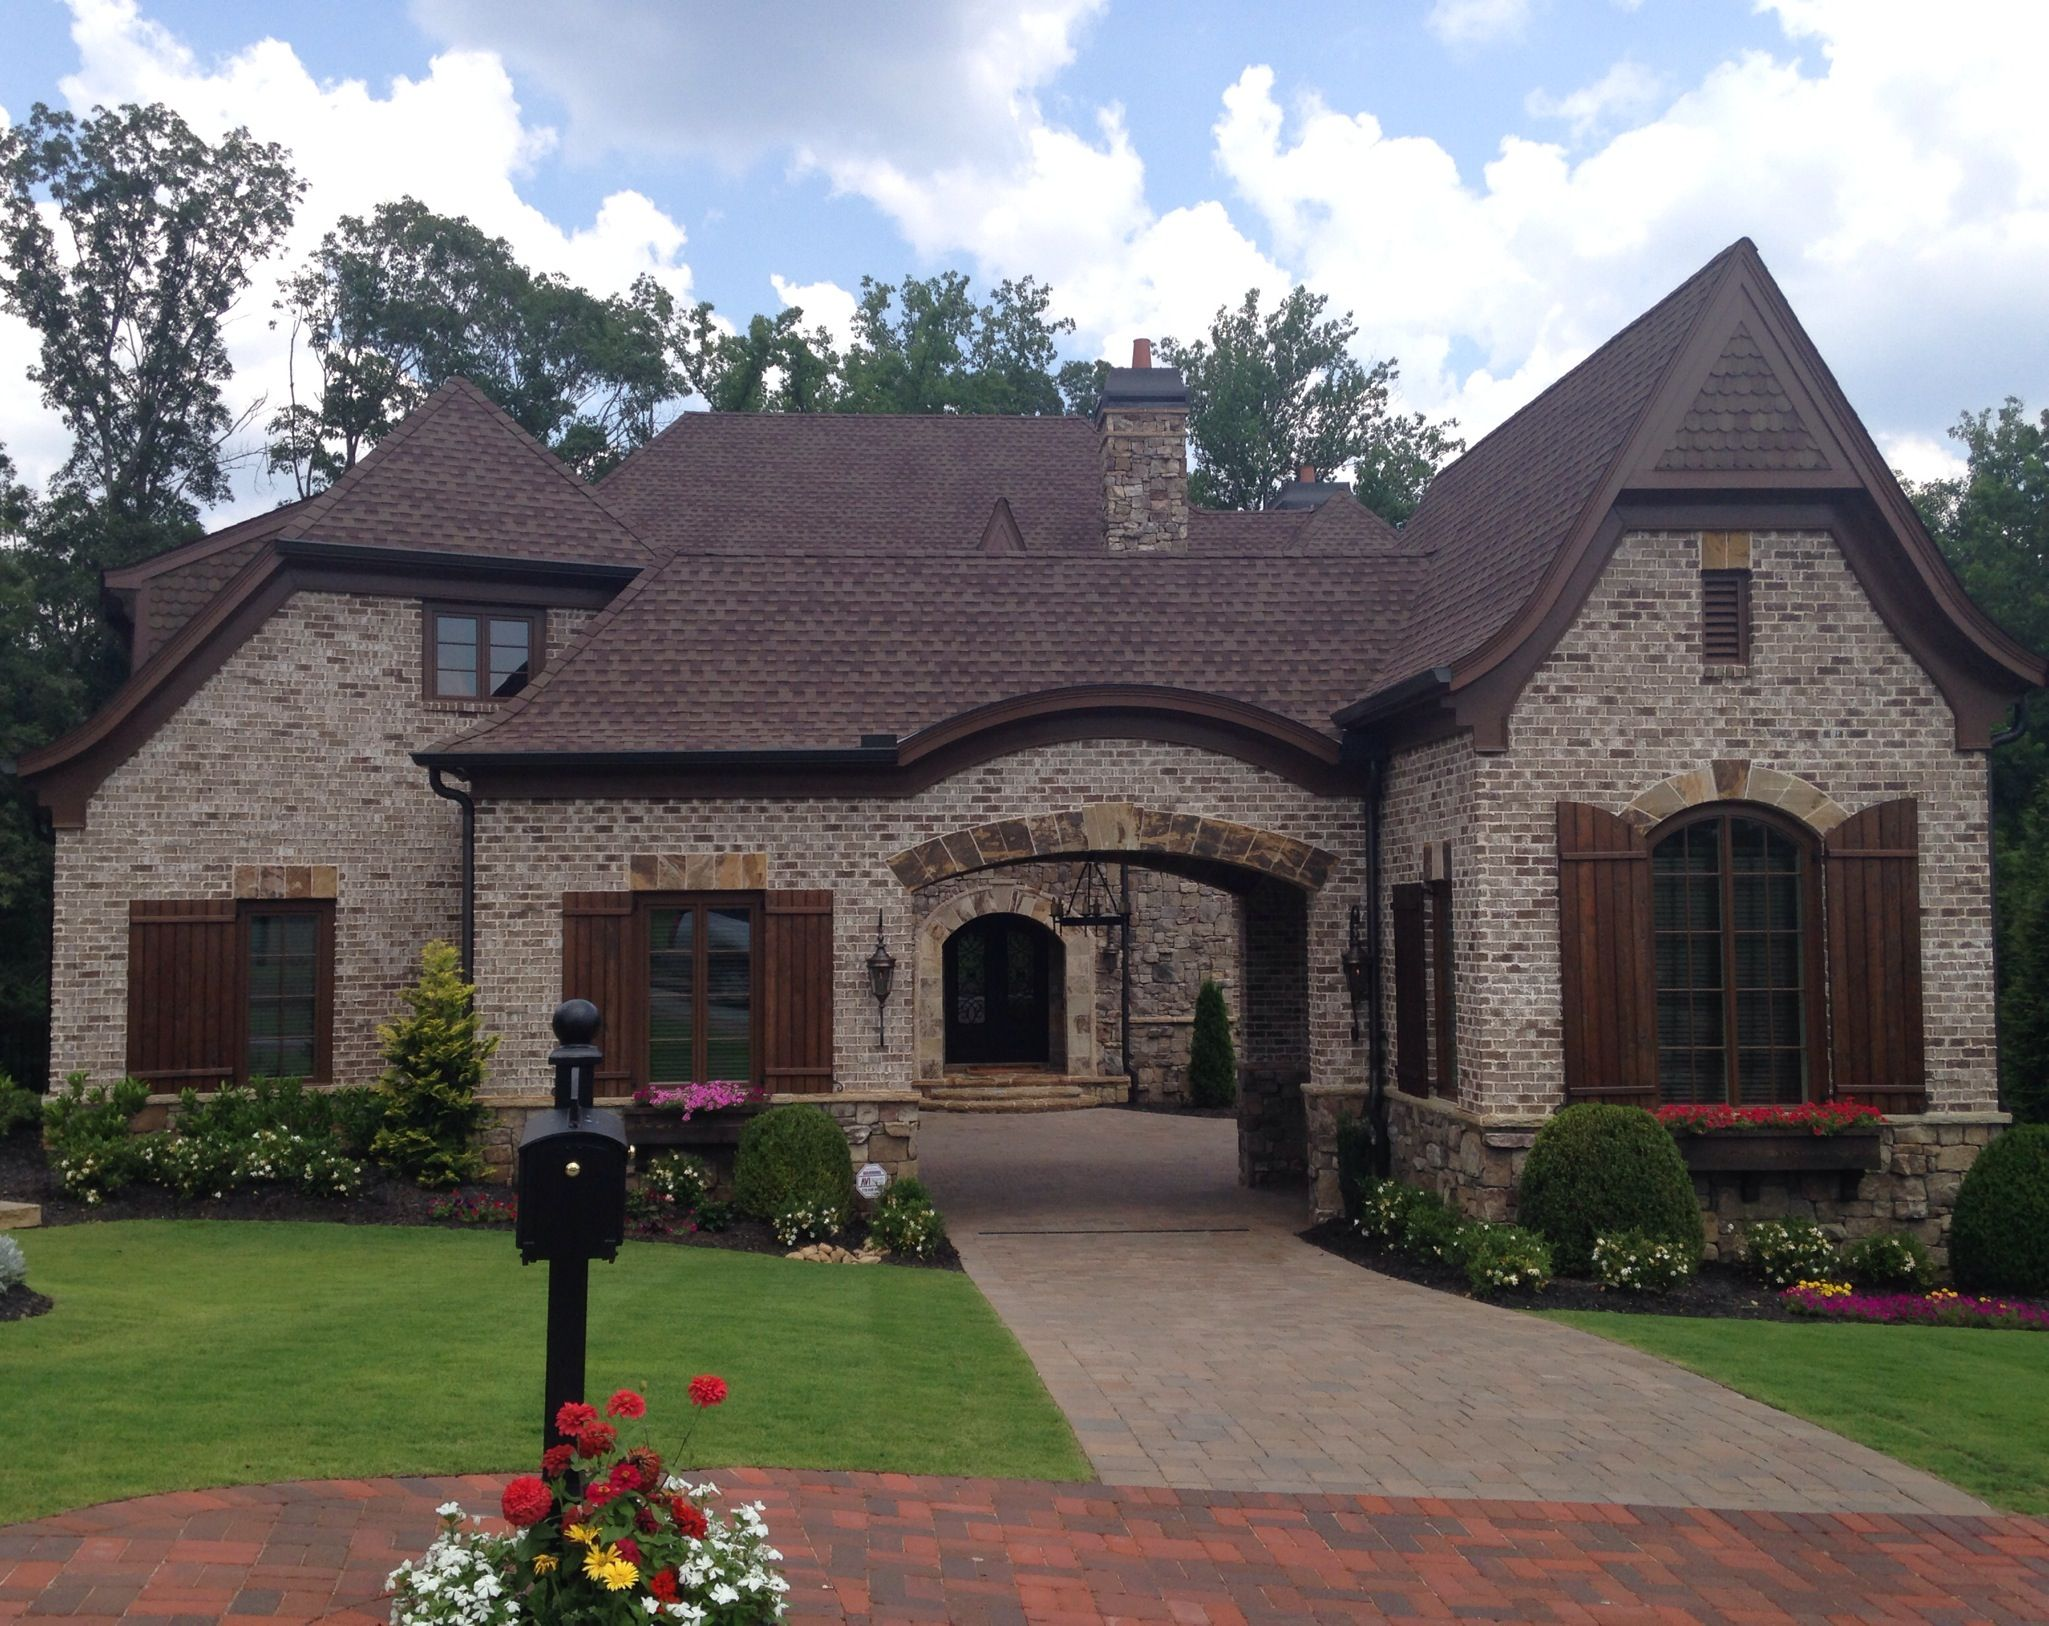 Brick stone chase mortar ivory columbus brick - Houses with stone and brick on exterior ...